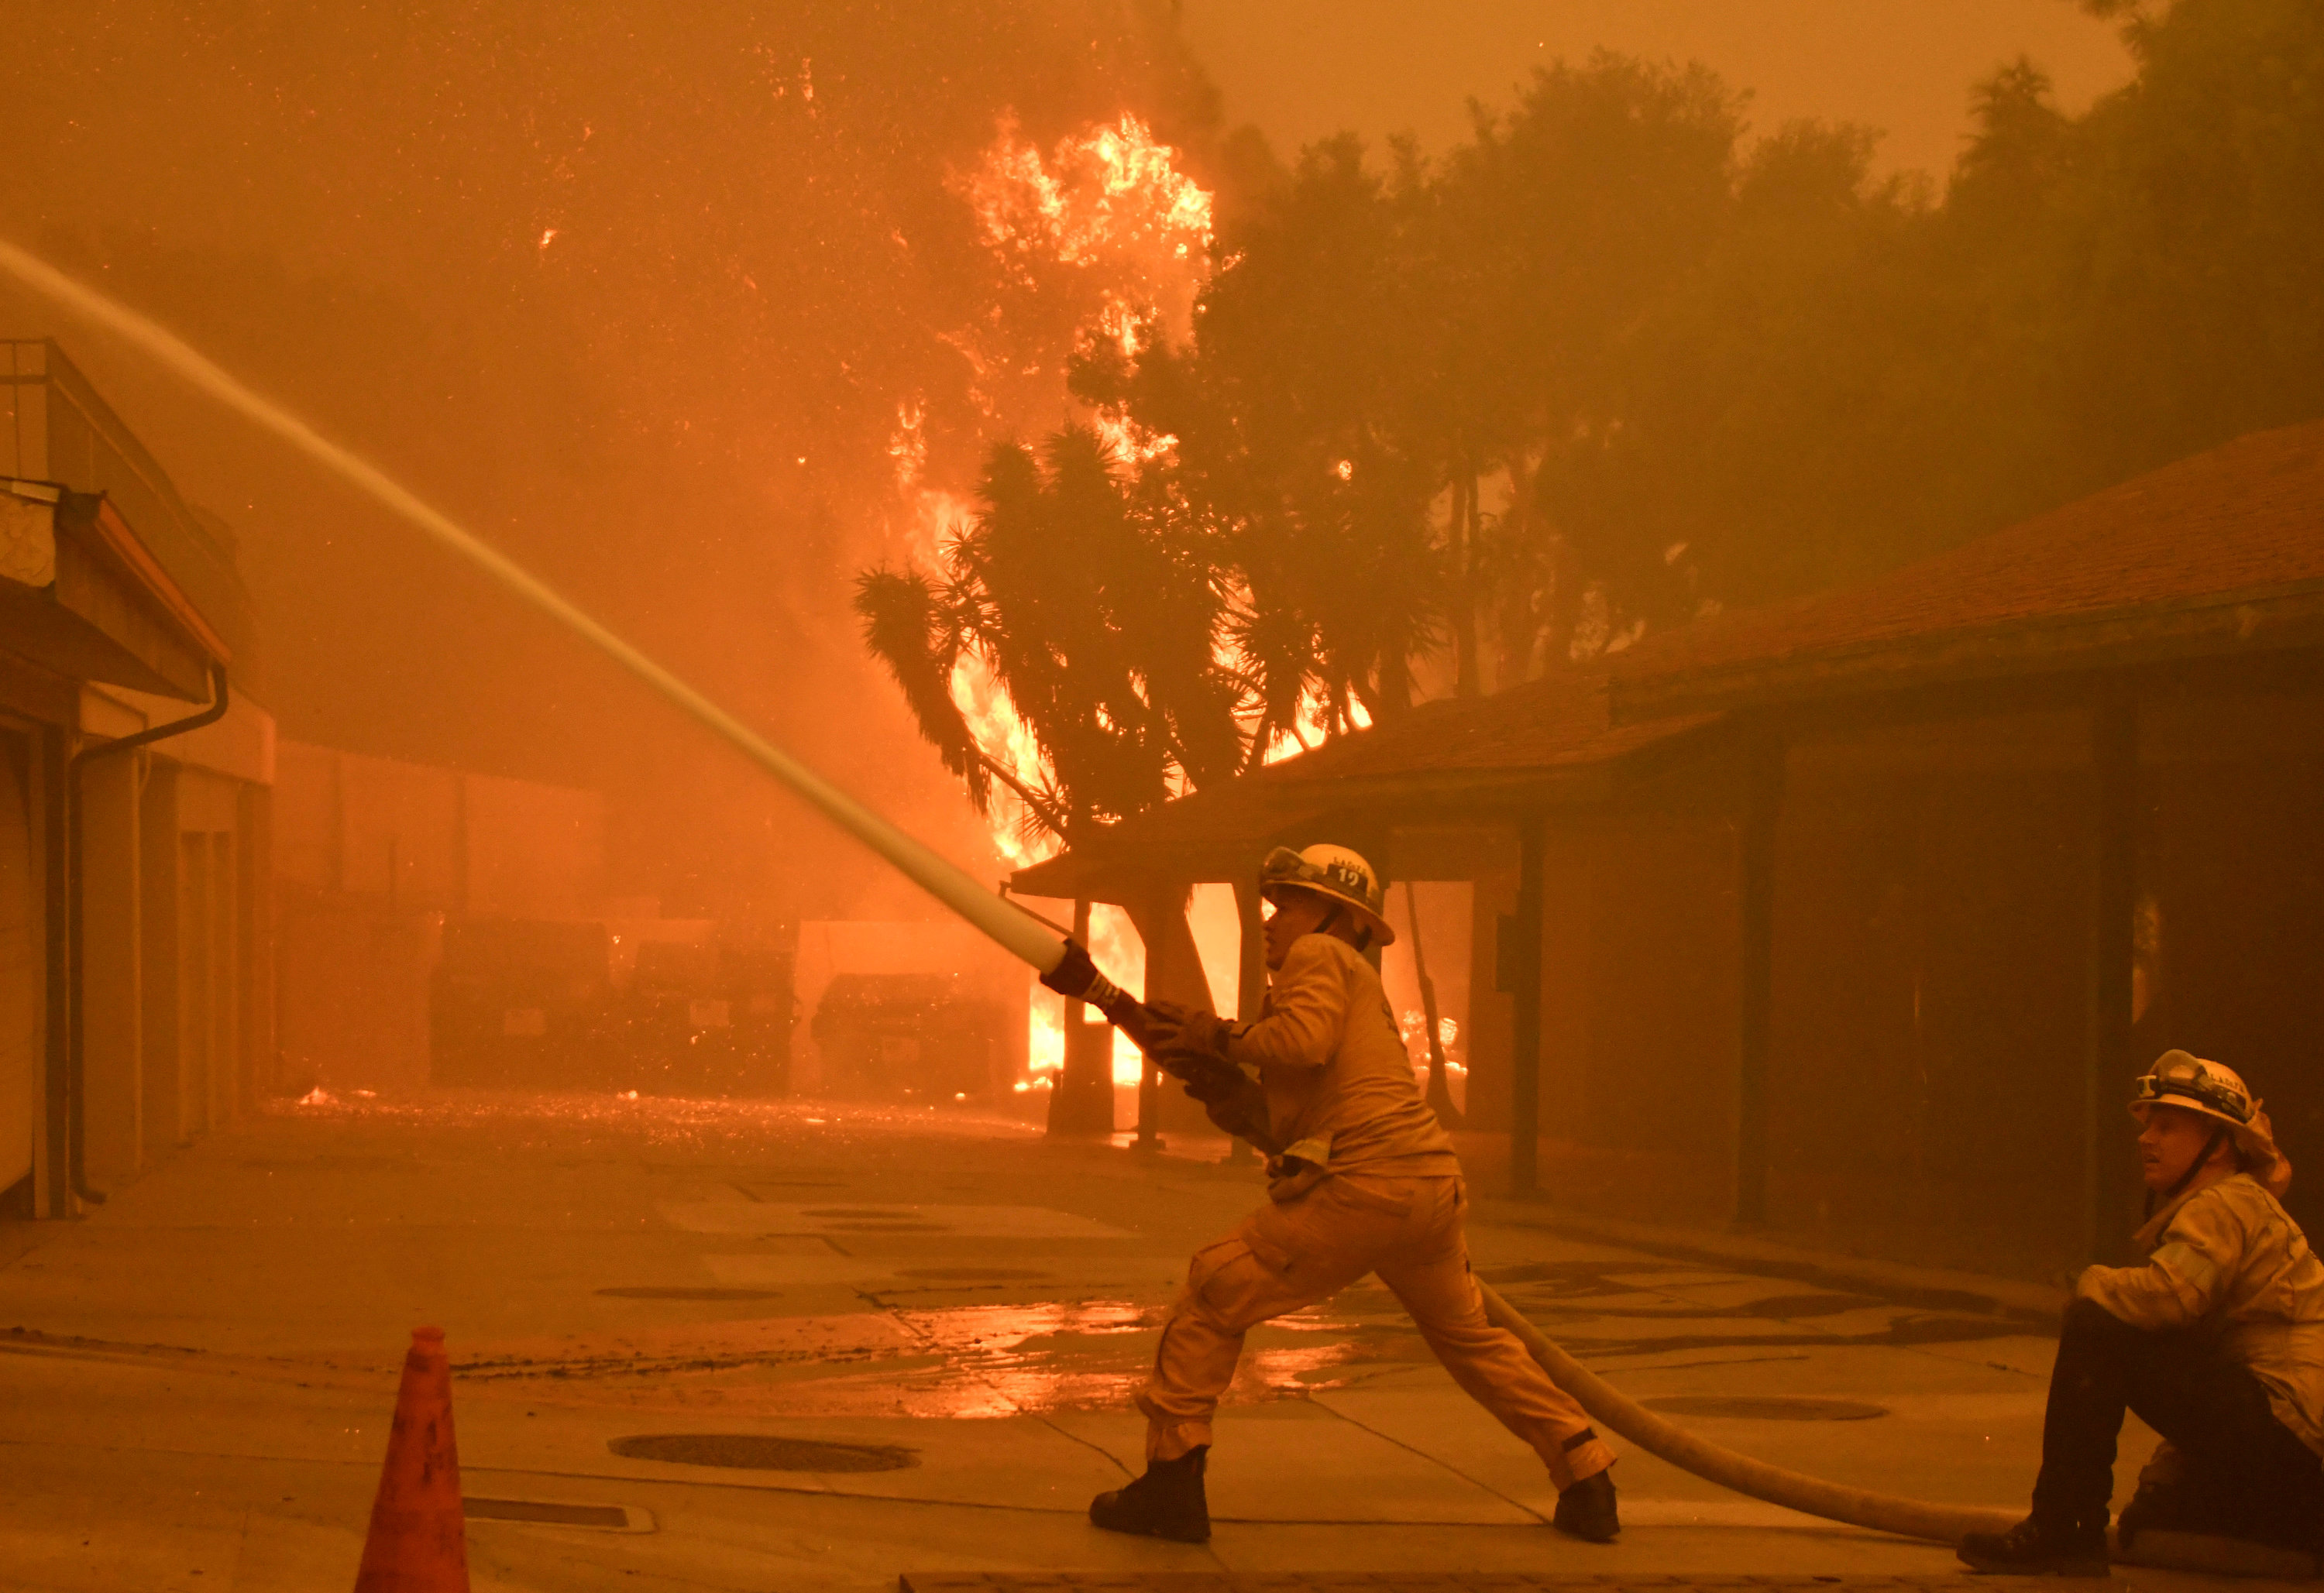 Firefighters hose down a condo unit during the Woolsey Fire in Malibu, California, US November 9, 2018.  REUTERS